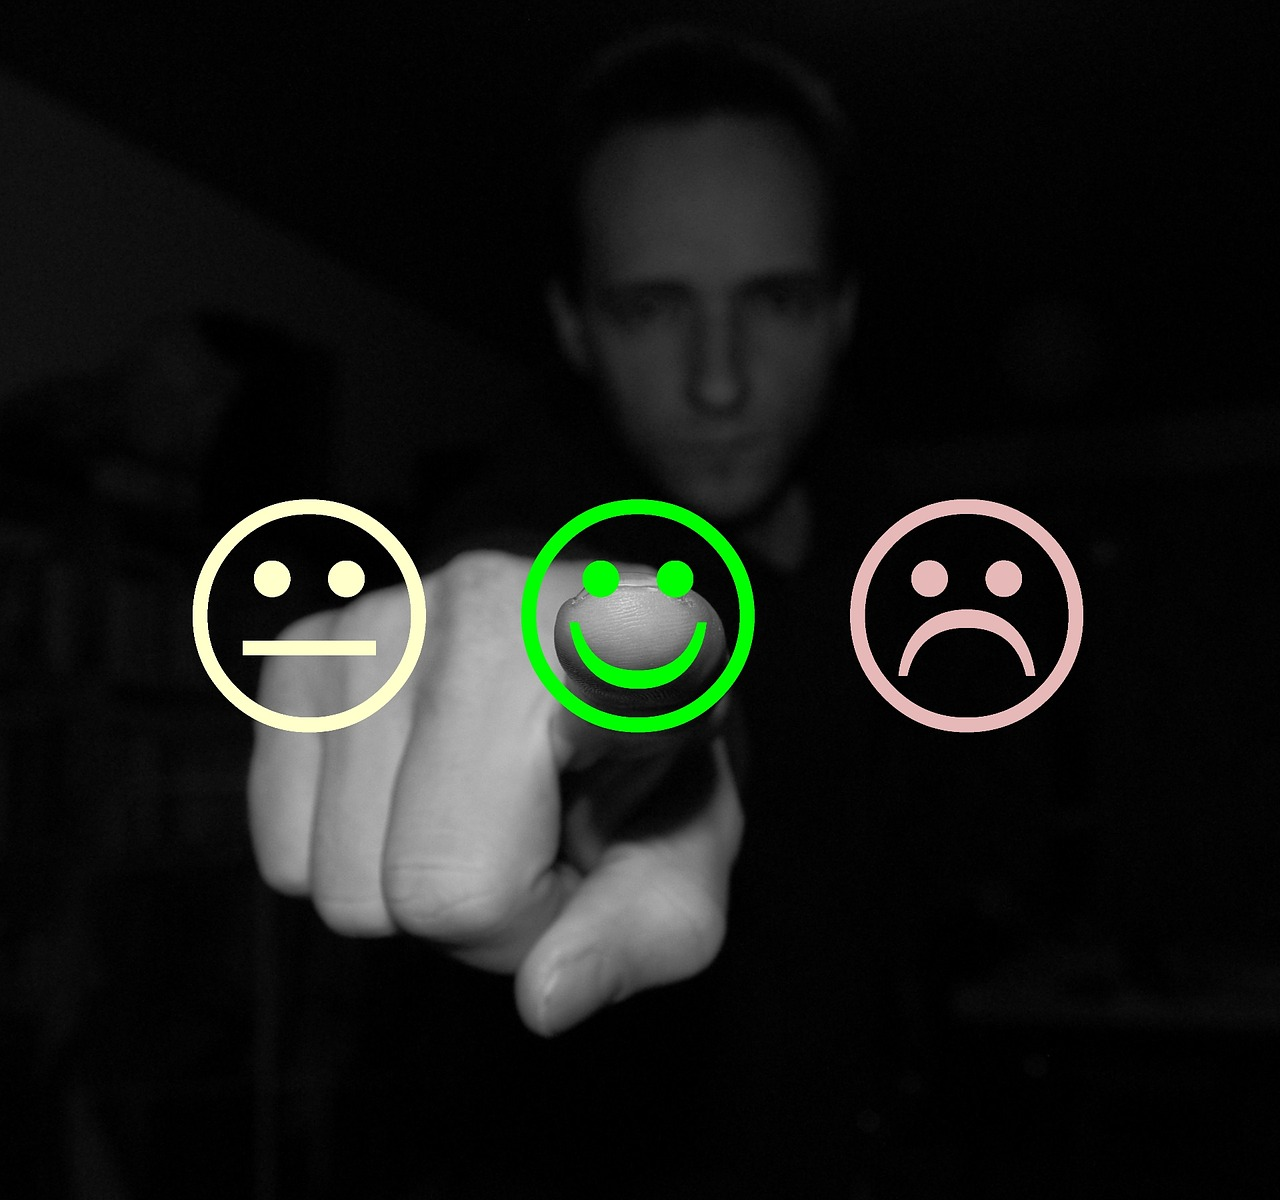 Customer Satisfaction - Your feedback matters.